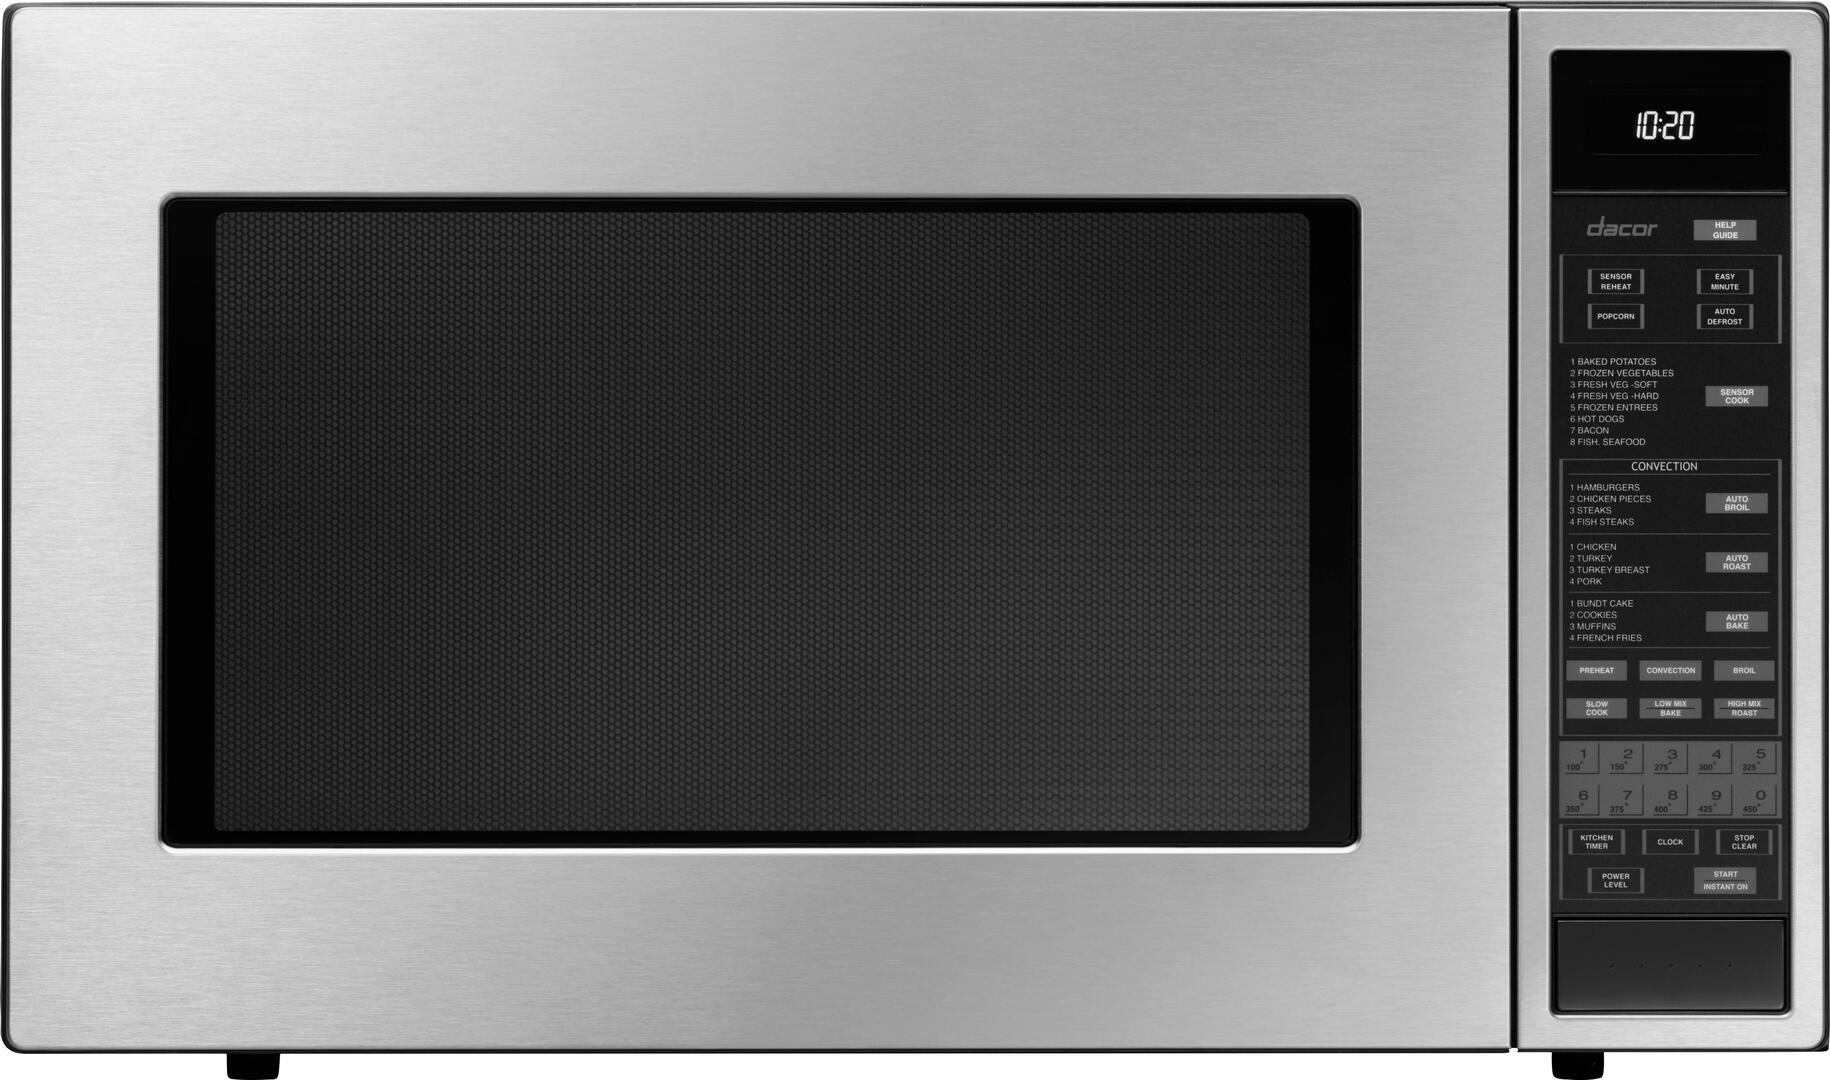 Dacor Dcm24s Stainless Steel Built In Microwave Oven